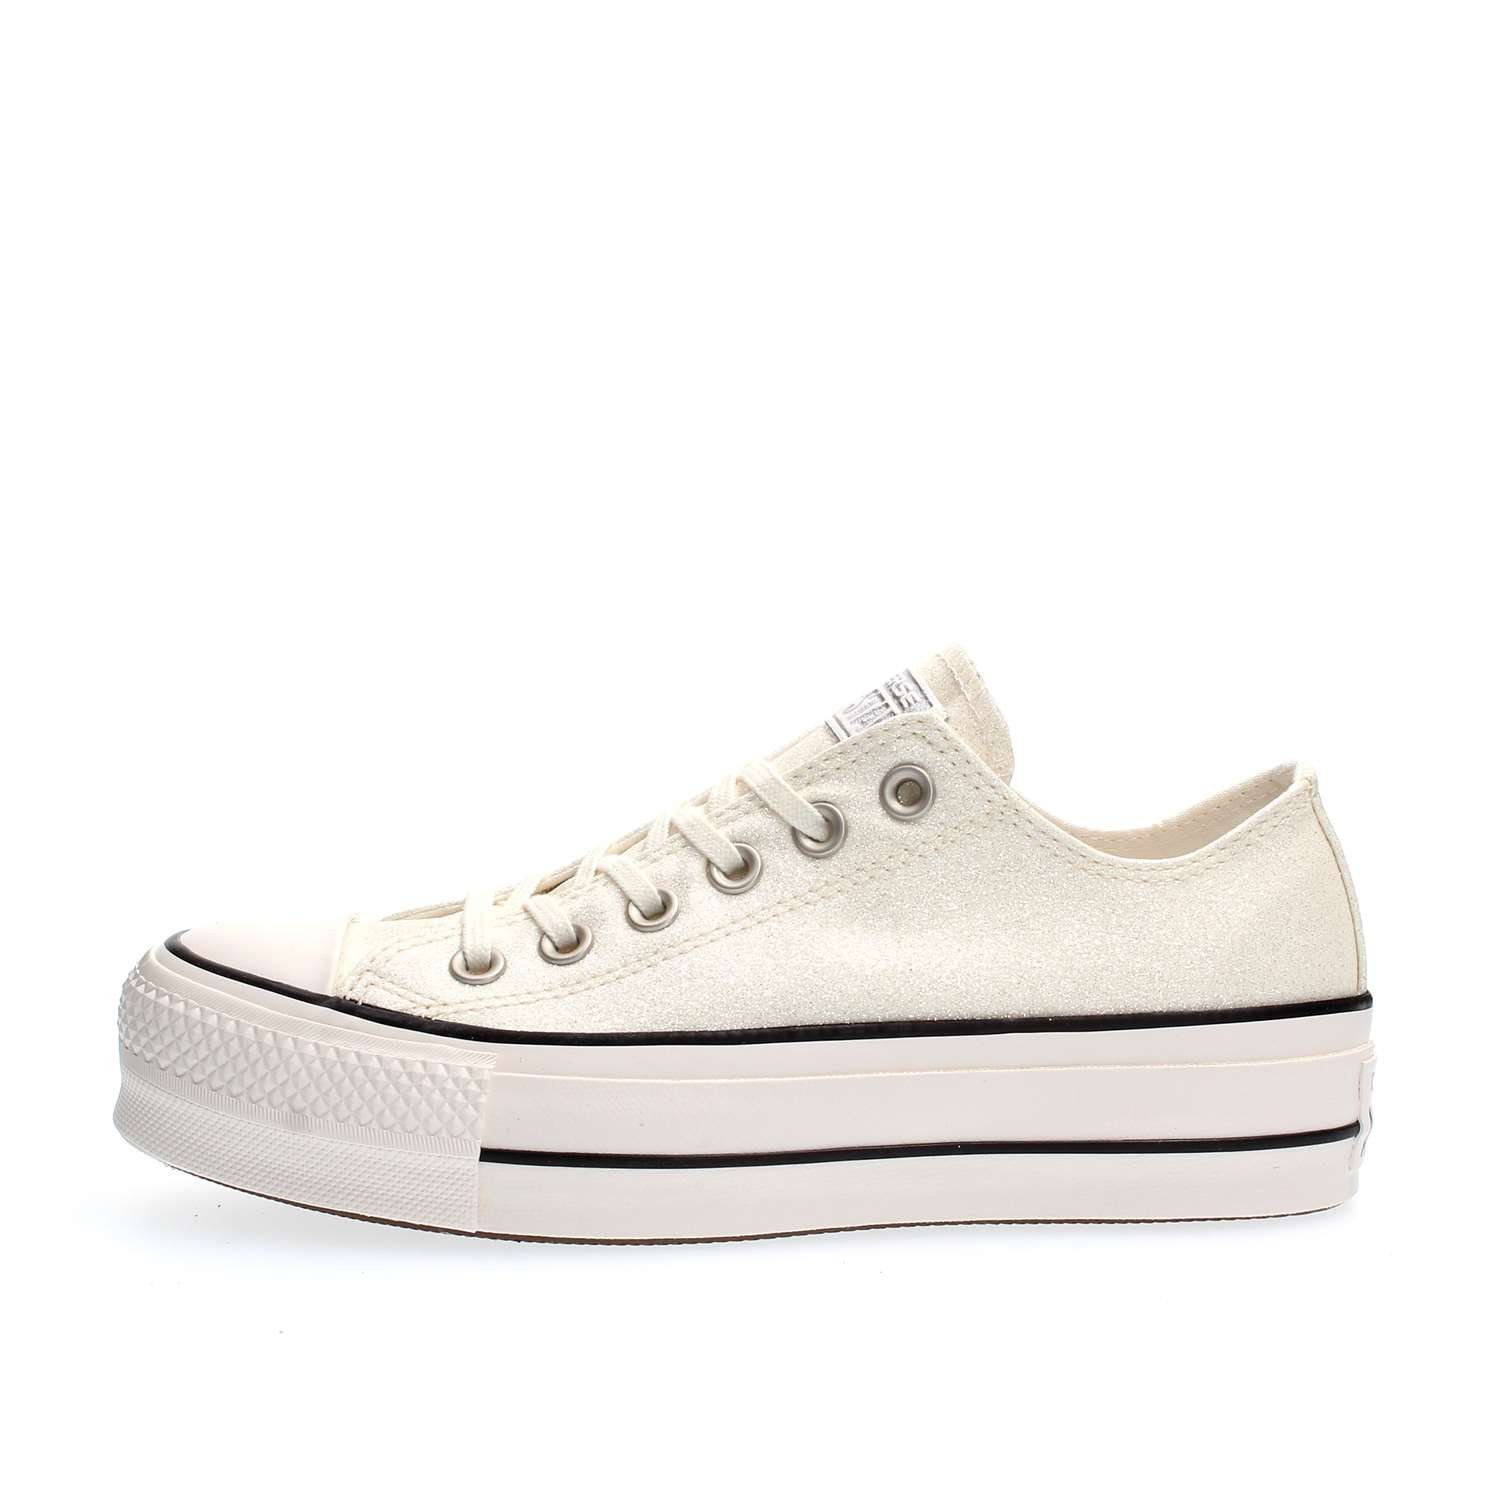 60381552c55f Converse Scarpe Chuck Taylor All Star Lift OX Platform Glitter Bianche P E  2018 561042C  Amazon.co.uk  Shoes   Bags